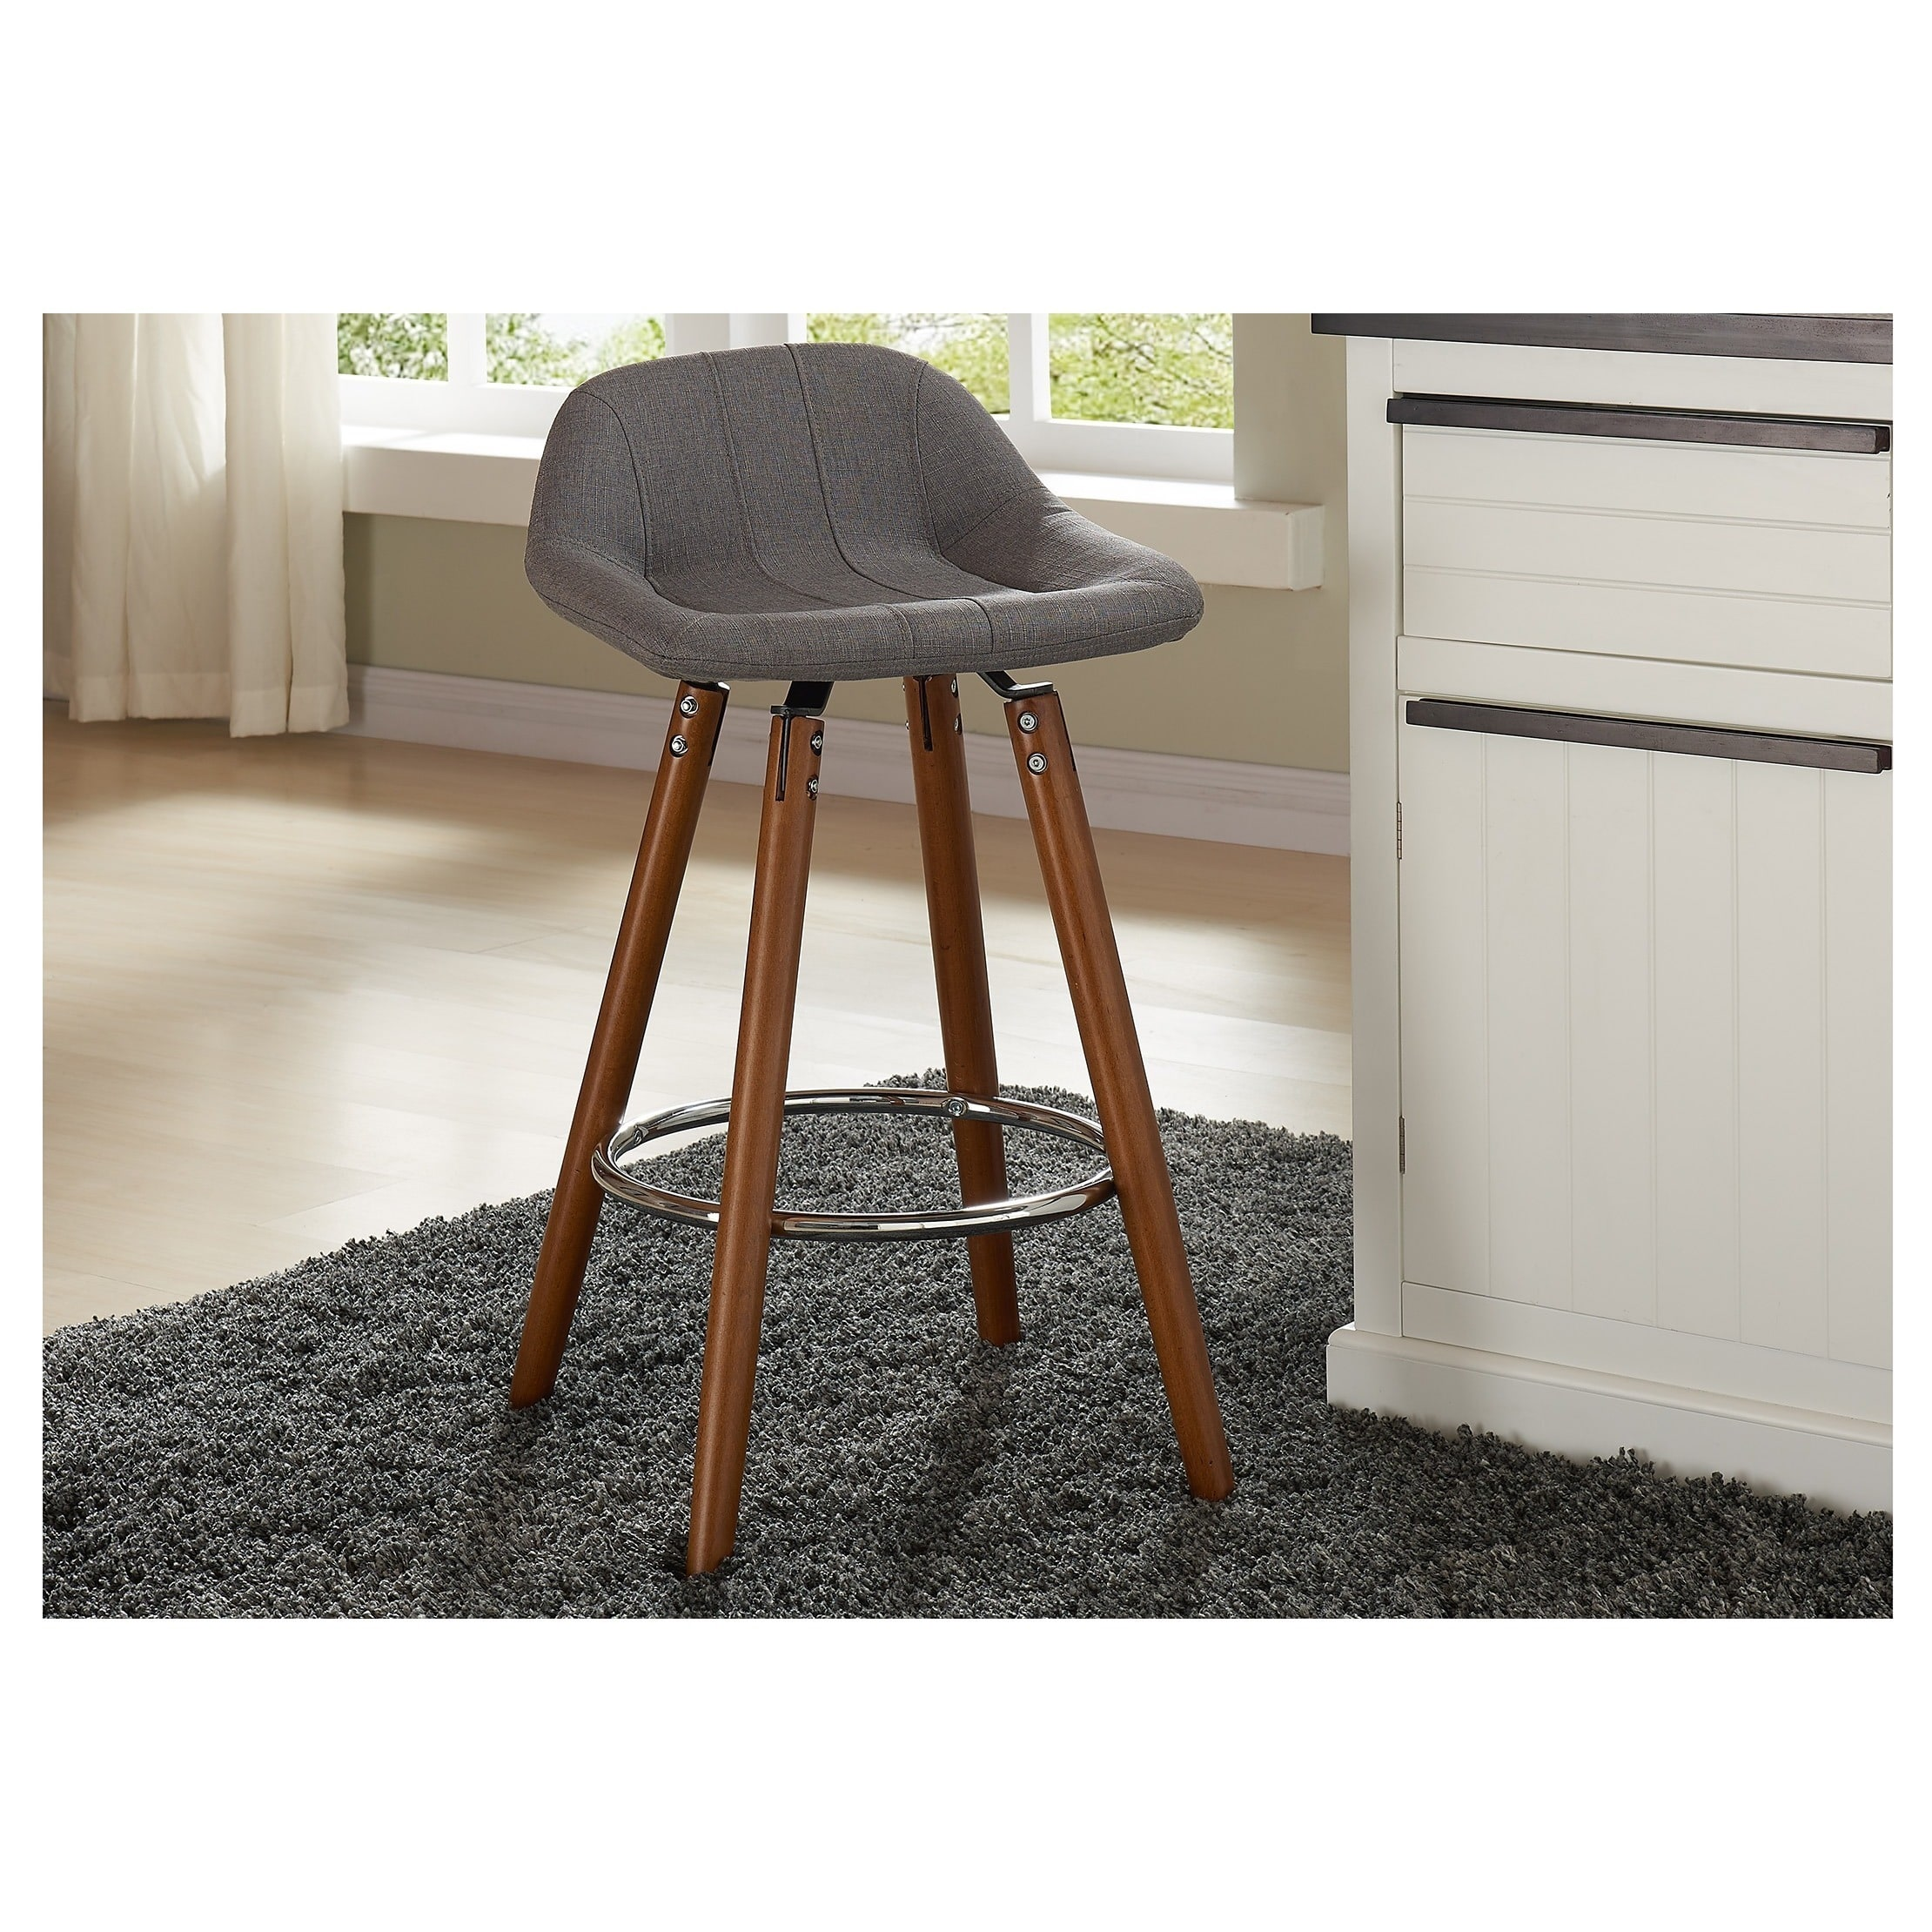 Palm Canyon Pelicano 26 Inch Counter Stool Camaro 26 Inch Counter